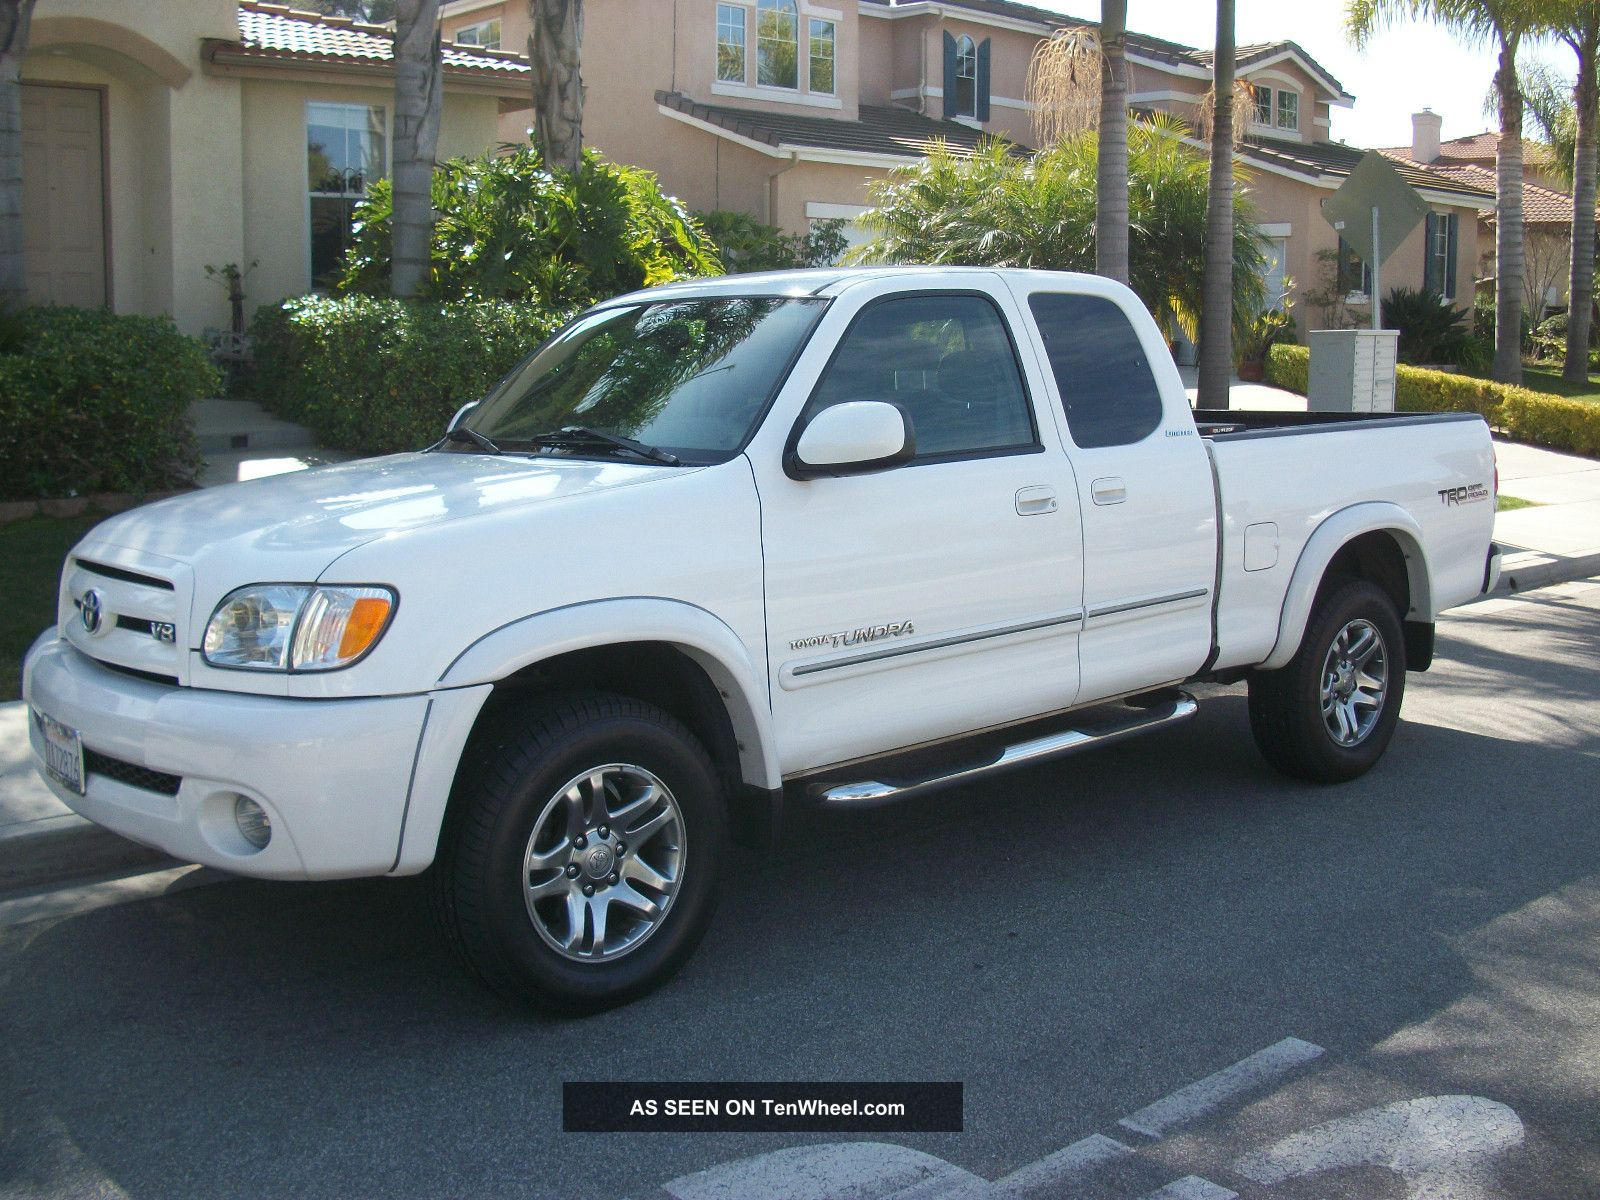 2003 toyota tundra trd limited 4x4 truck int towing pkg 8000lbs. Black Bedroom Furniture Sets. Home Design Ideas